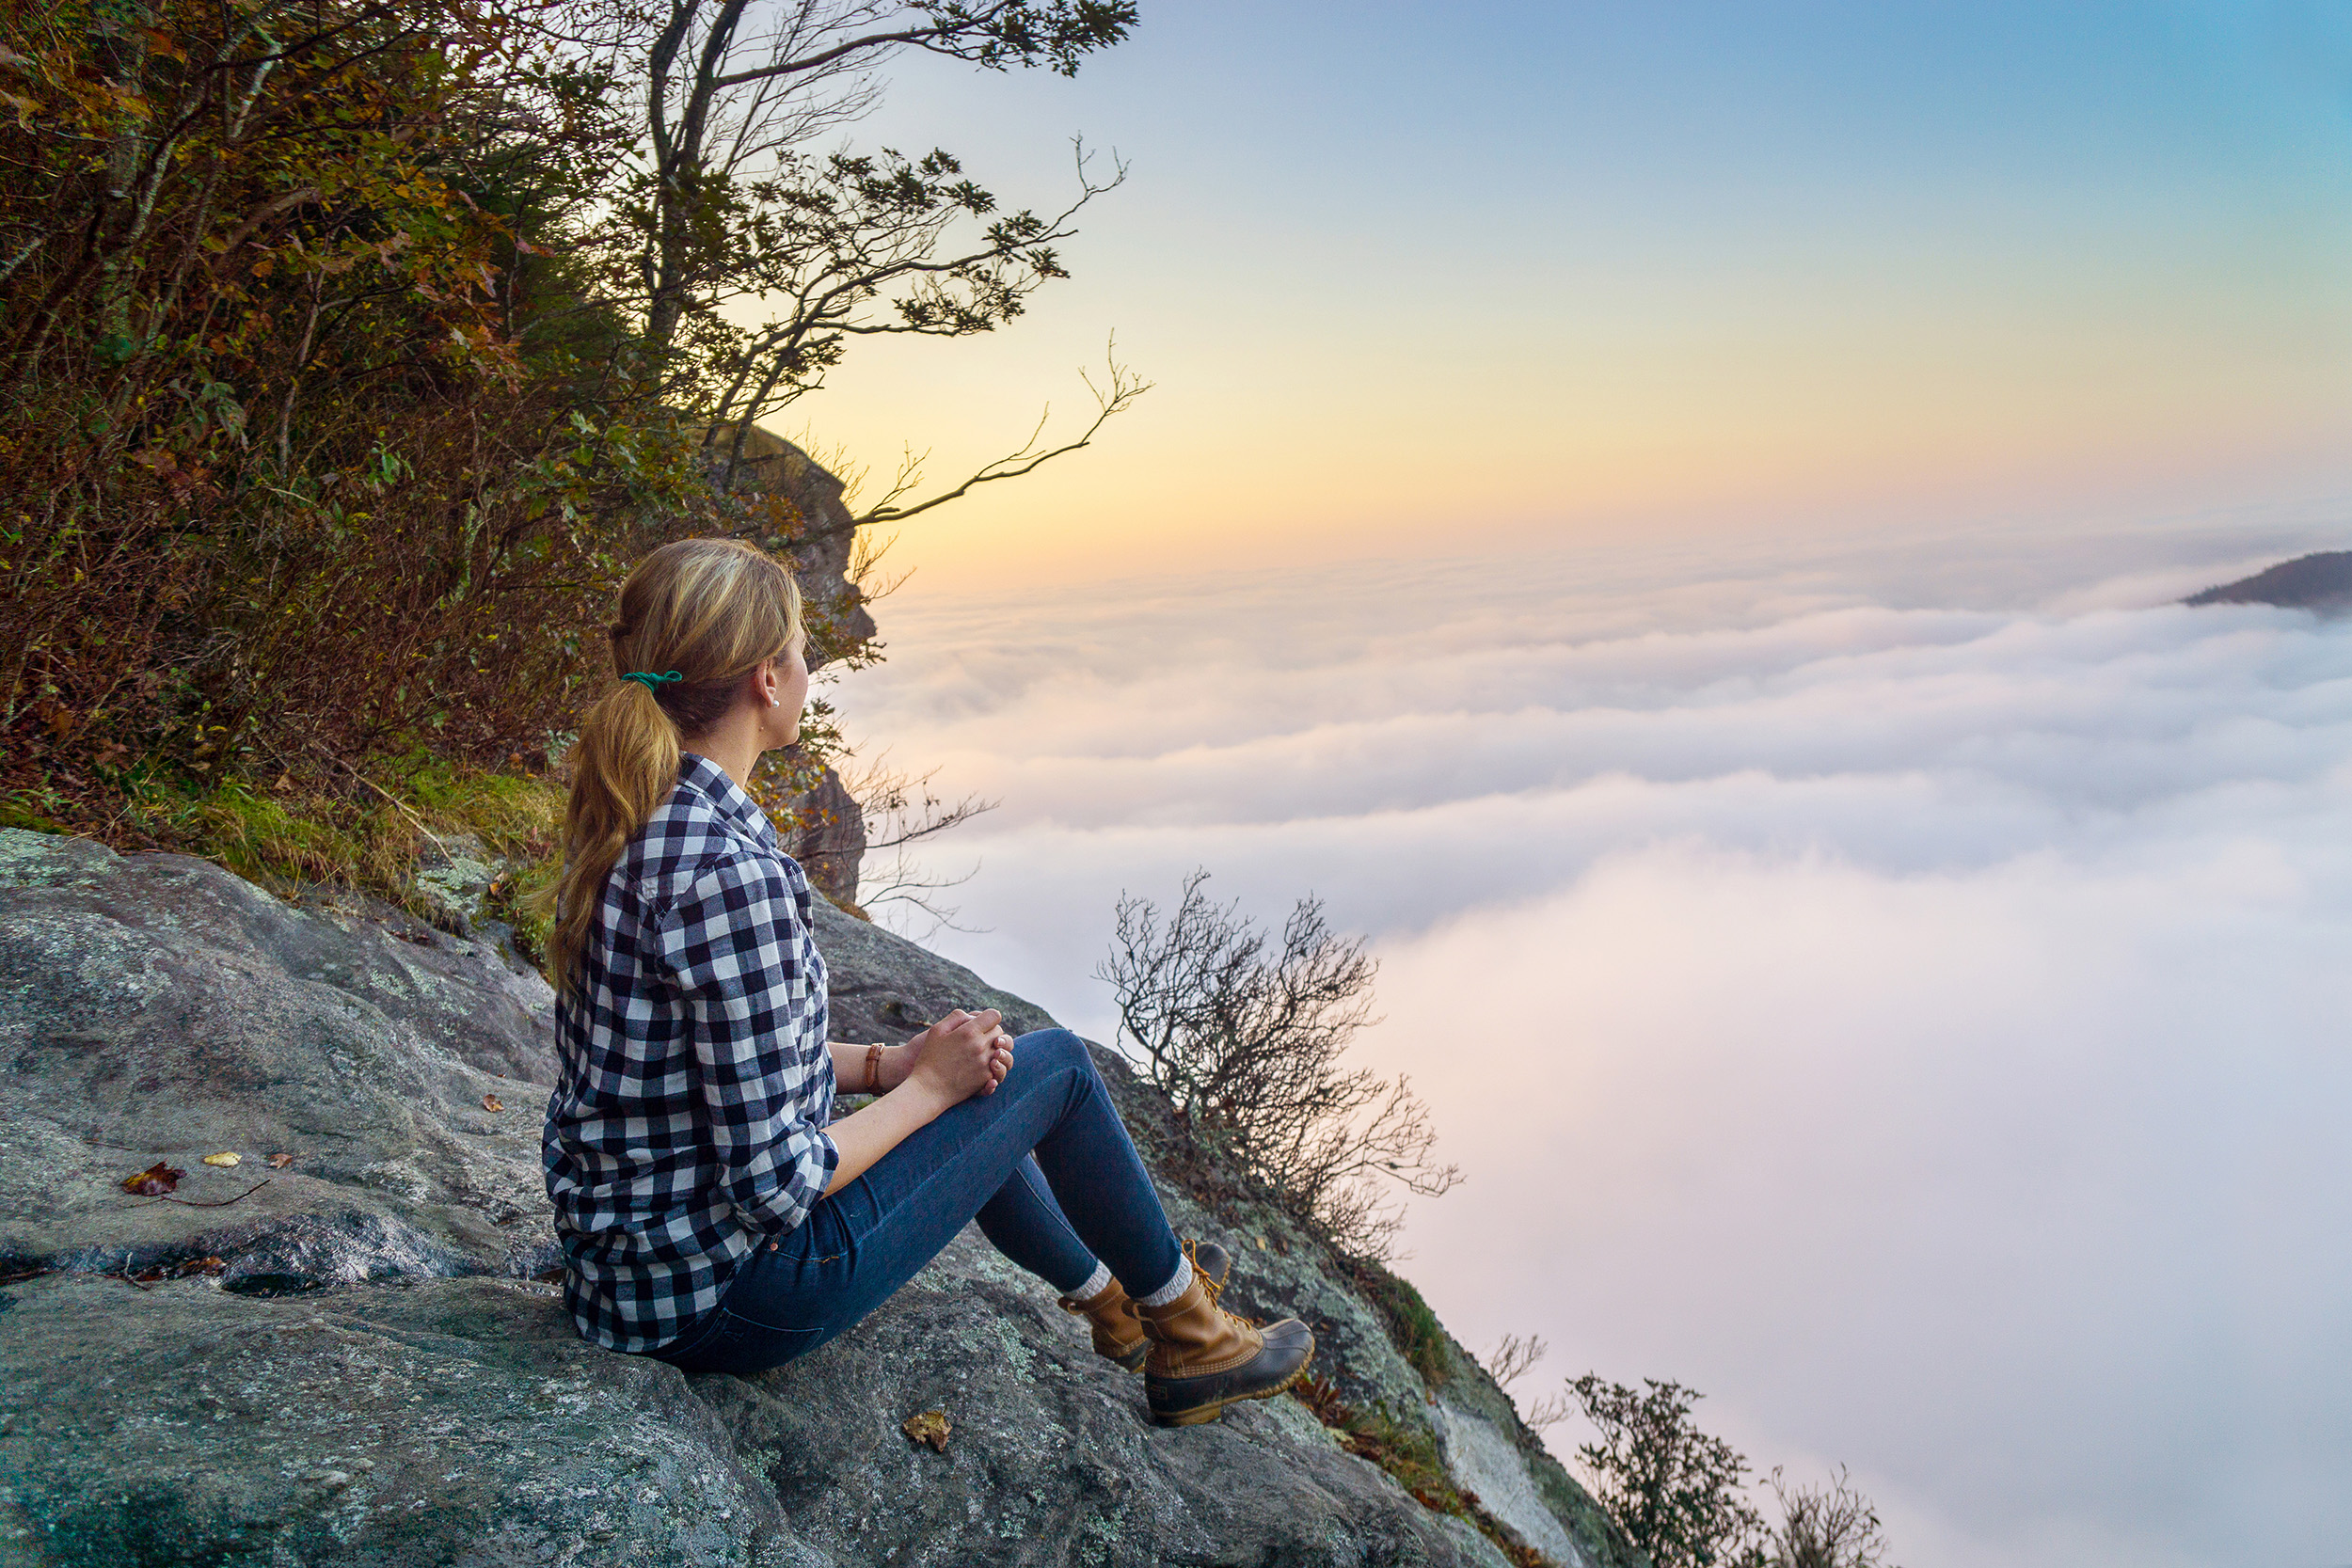 woman resting after hiking whit side mountain and taking in the cloudy view of jackson county